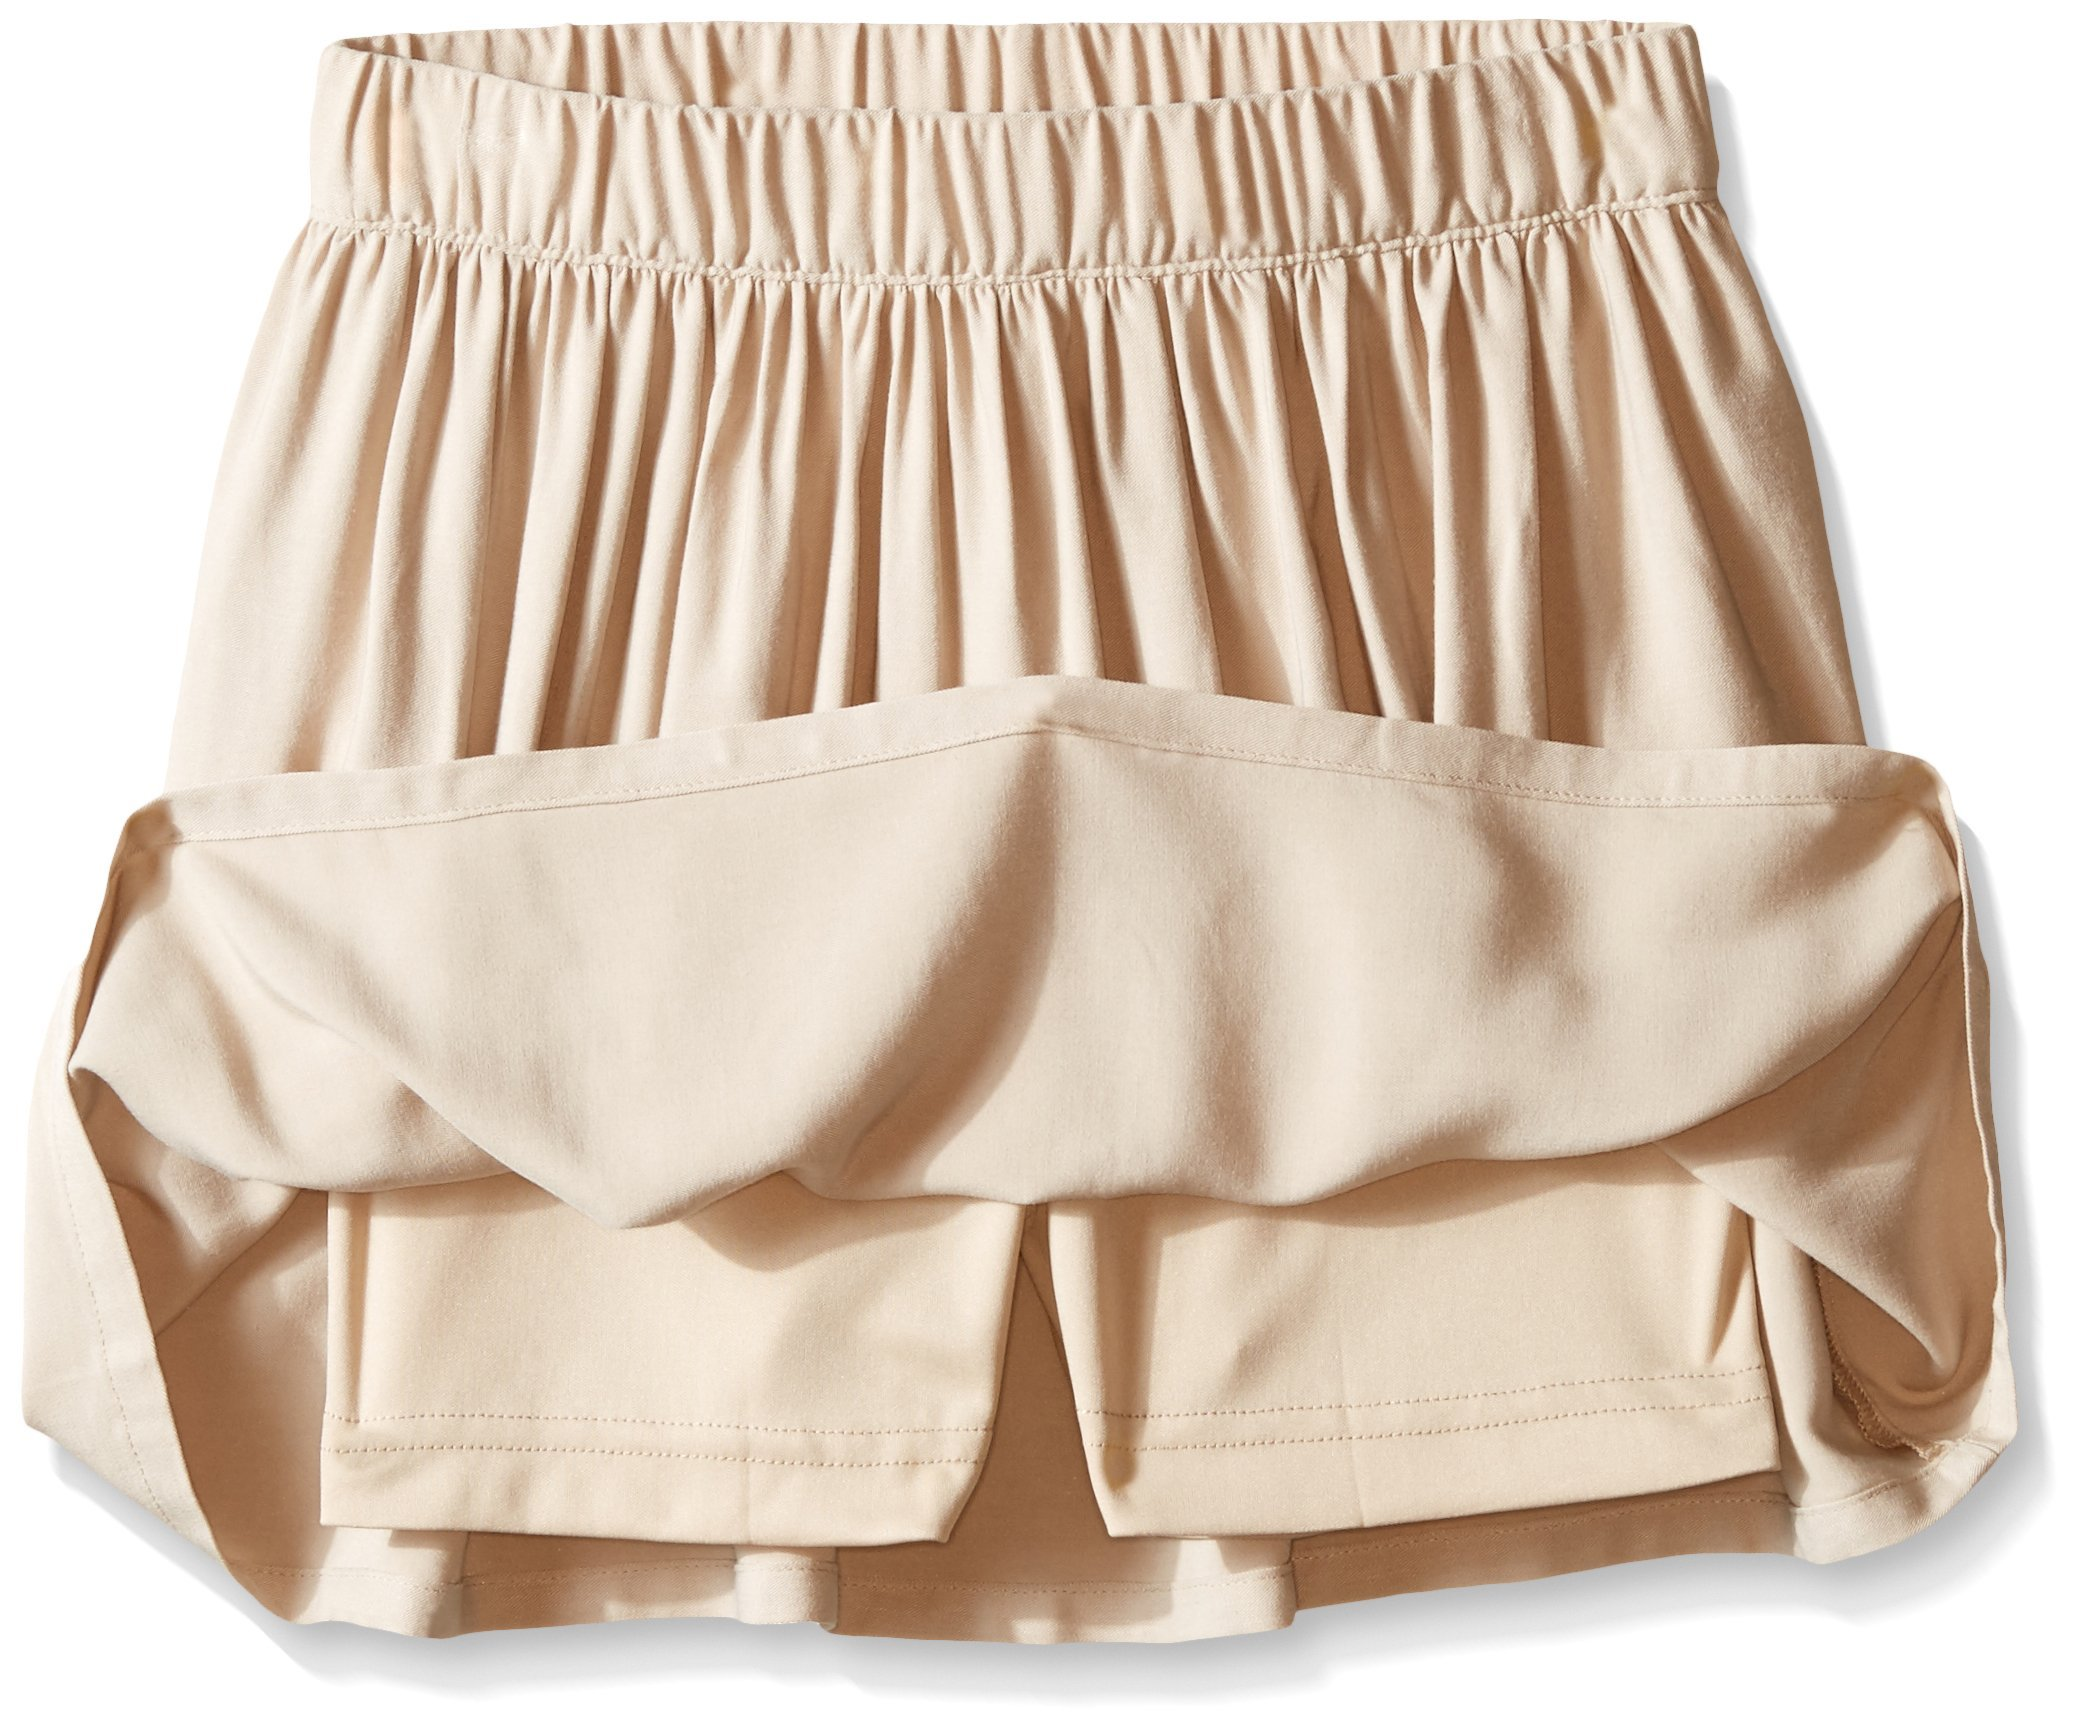 Nautica Big Girls' Uniform Soft Touch Pull-On Scooter, Khaki, 10 by Nautica (Image #2)